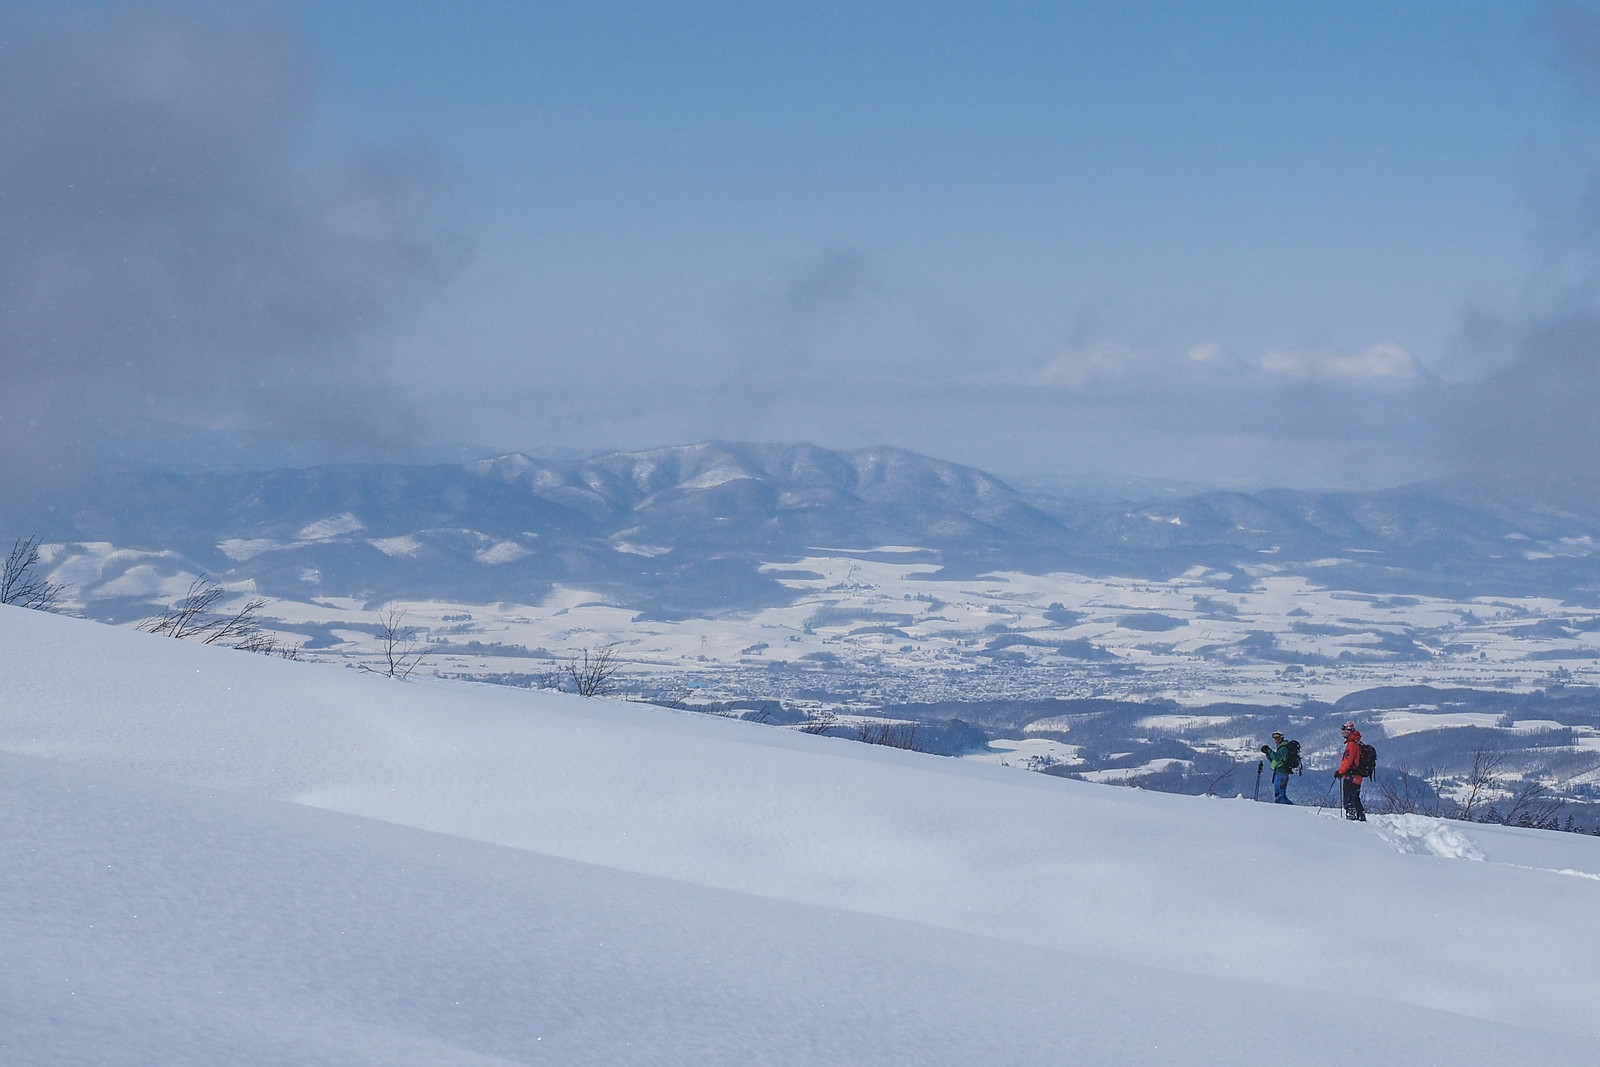 Expansive views over the Furano plains (Hokkaido, Japan)